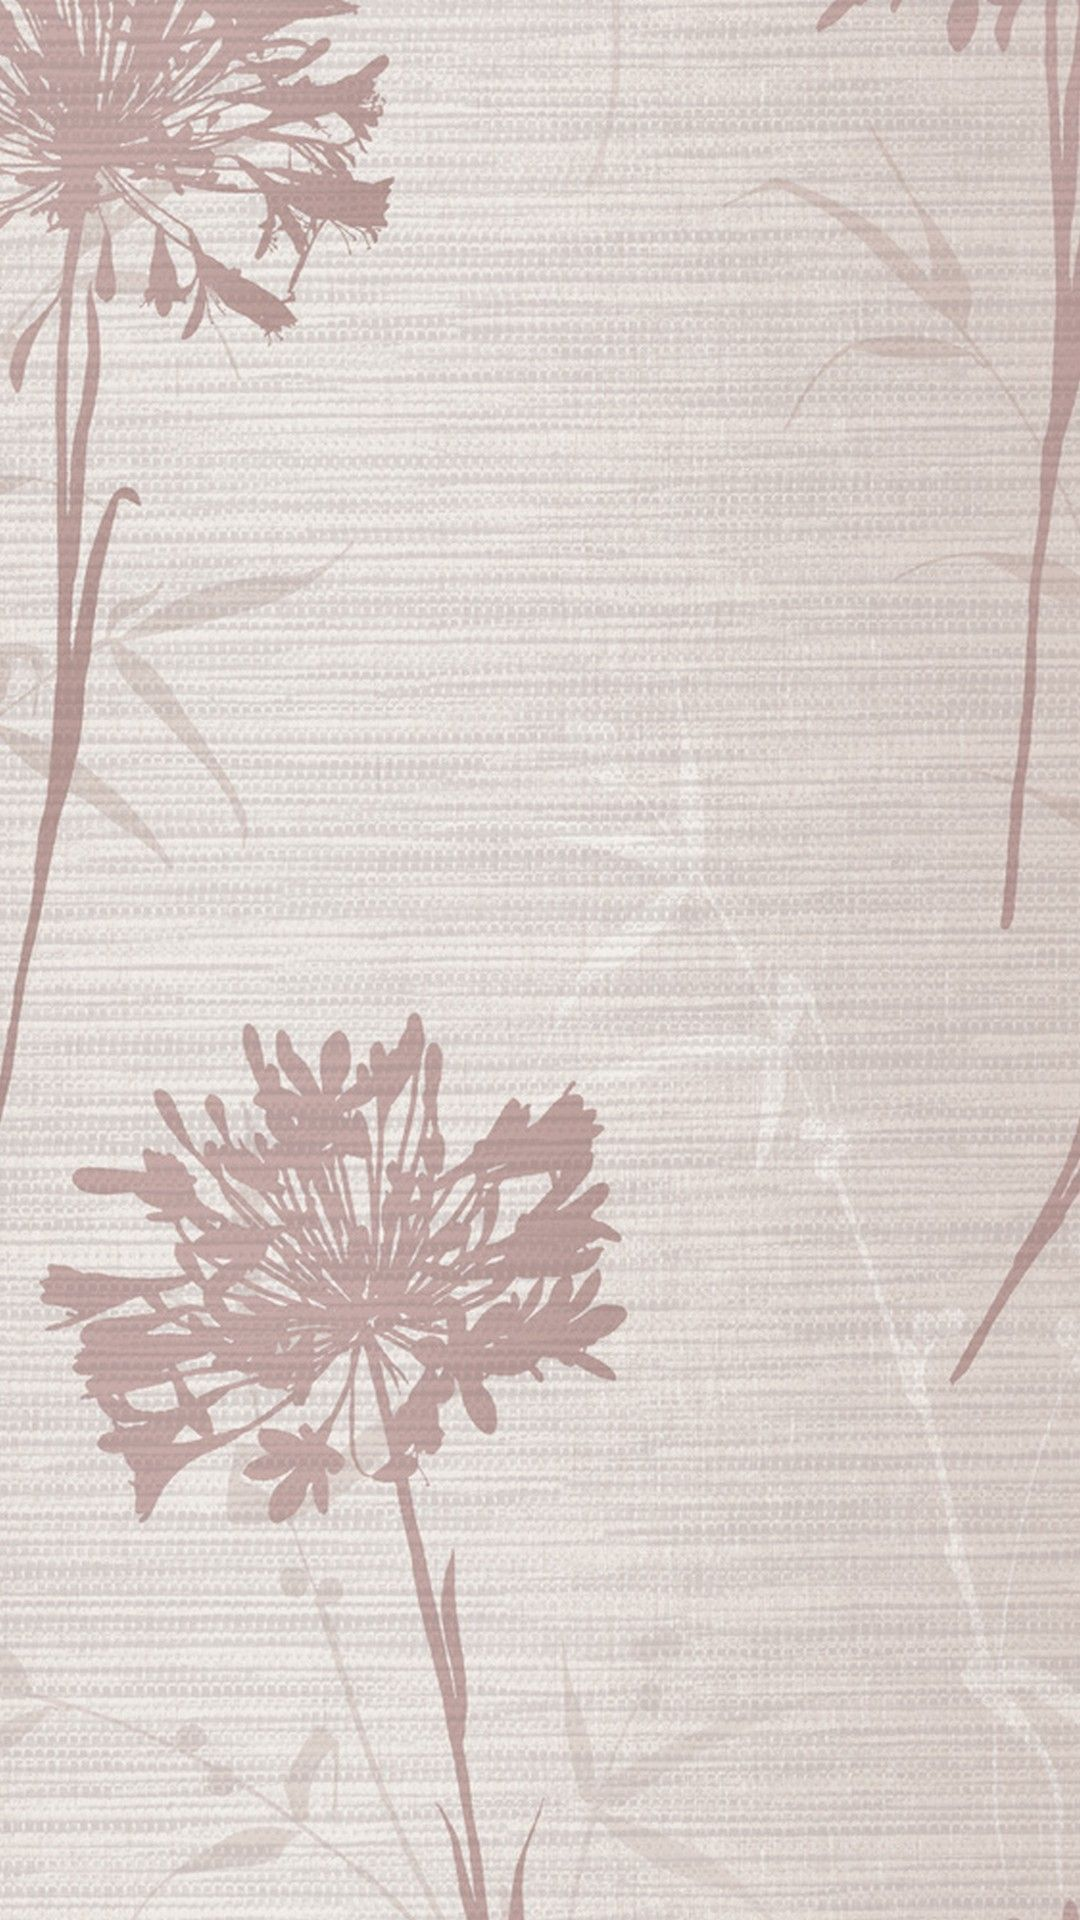 Rose Gold Pink And Grey Android Background Rose Gold Wallpaper Gold Wallpaper Iphone Grey Wallpaper Iphone